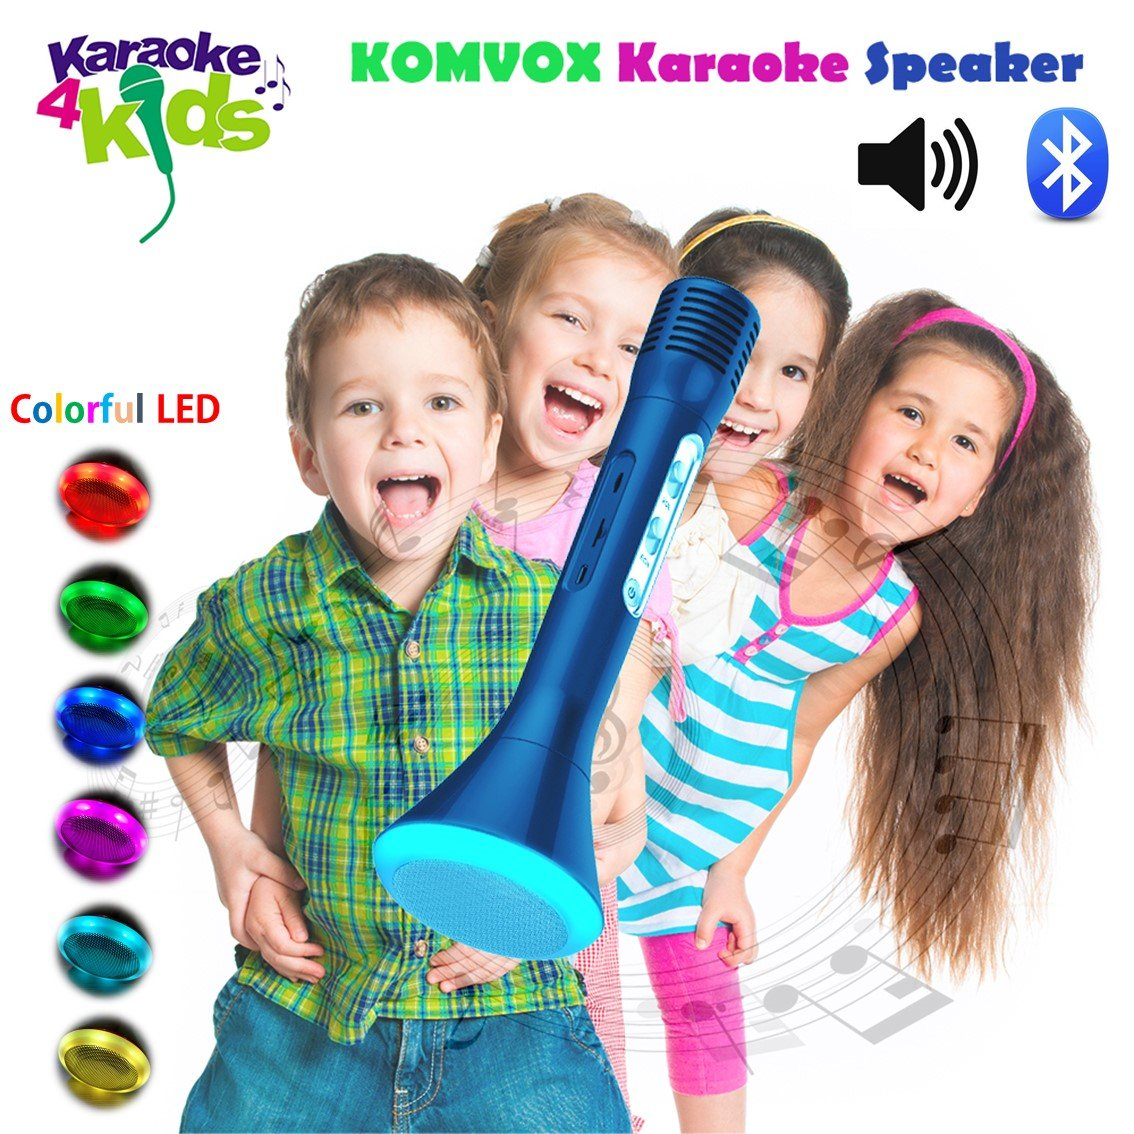 Kids Microphone,Karaoke Machine for Kids,Toy Microphone,Toddler Musical Kids Toys for 3 4 5 6 7 8 9 11 12 Year Old Boy Girl Gifts, Birthday Gifts for Girls Boys,Disney Baby Toys for Disney Song